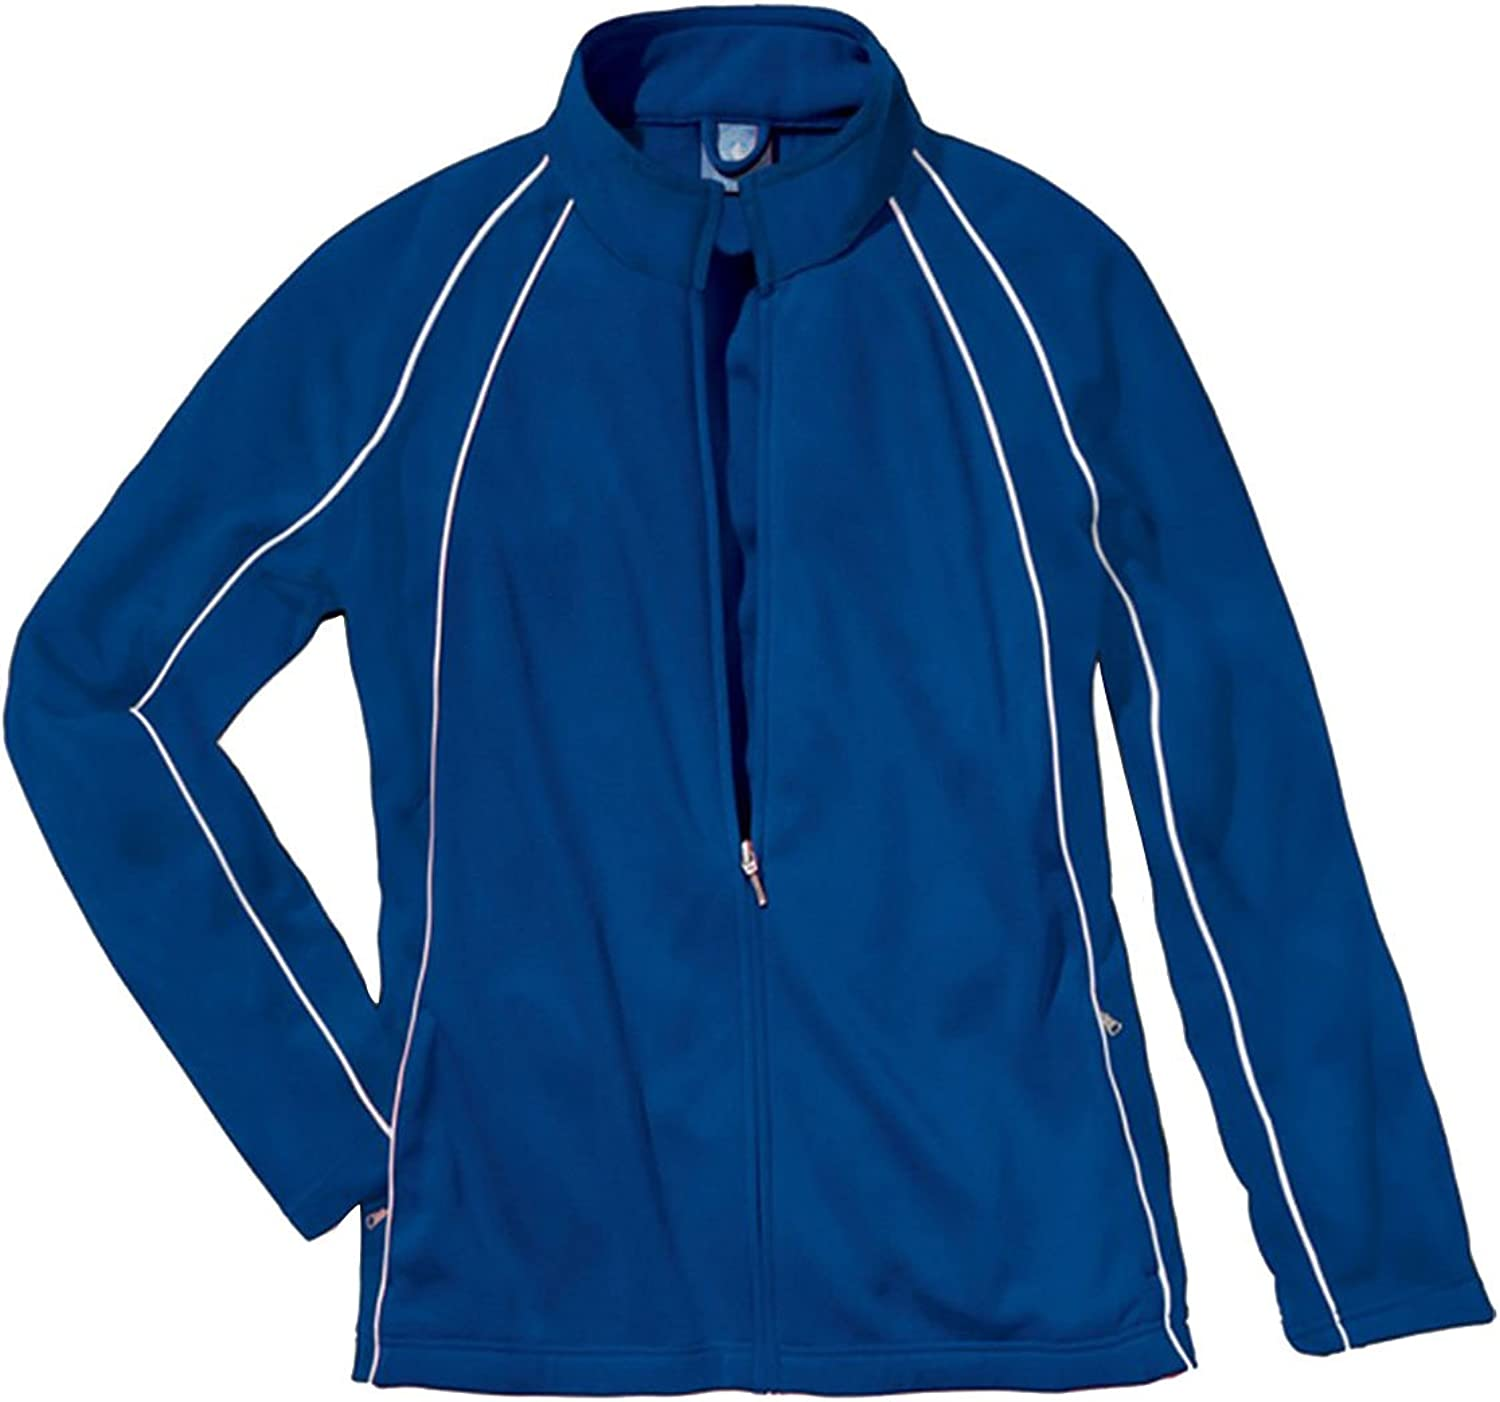 The  Olympian Collection  The Olympian Warmup Jacket for Women